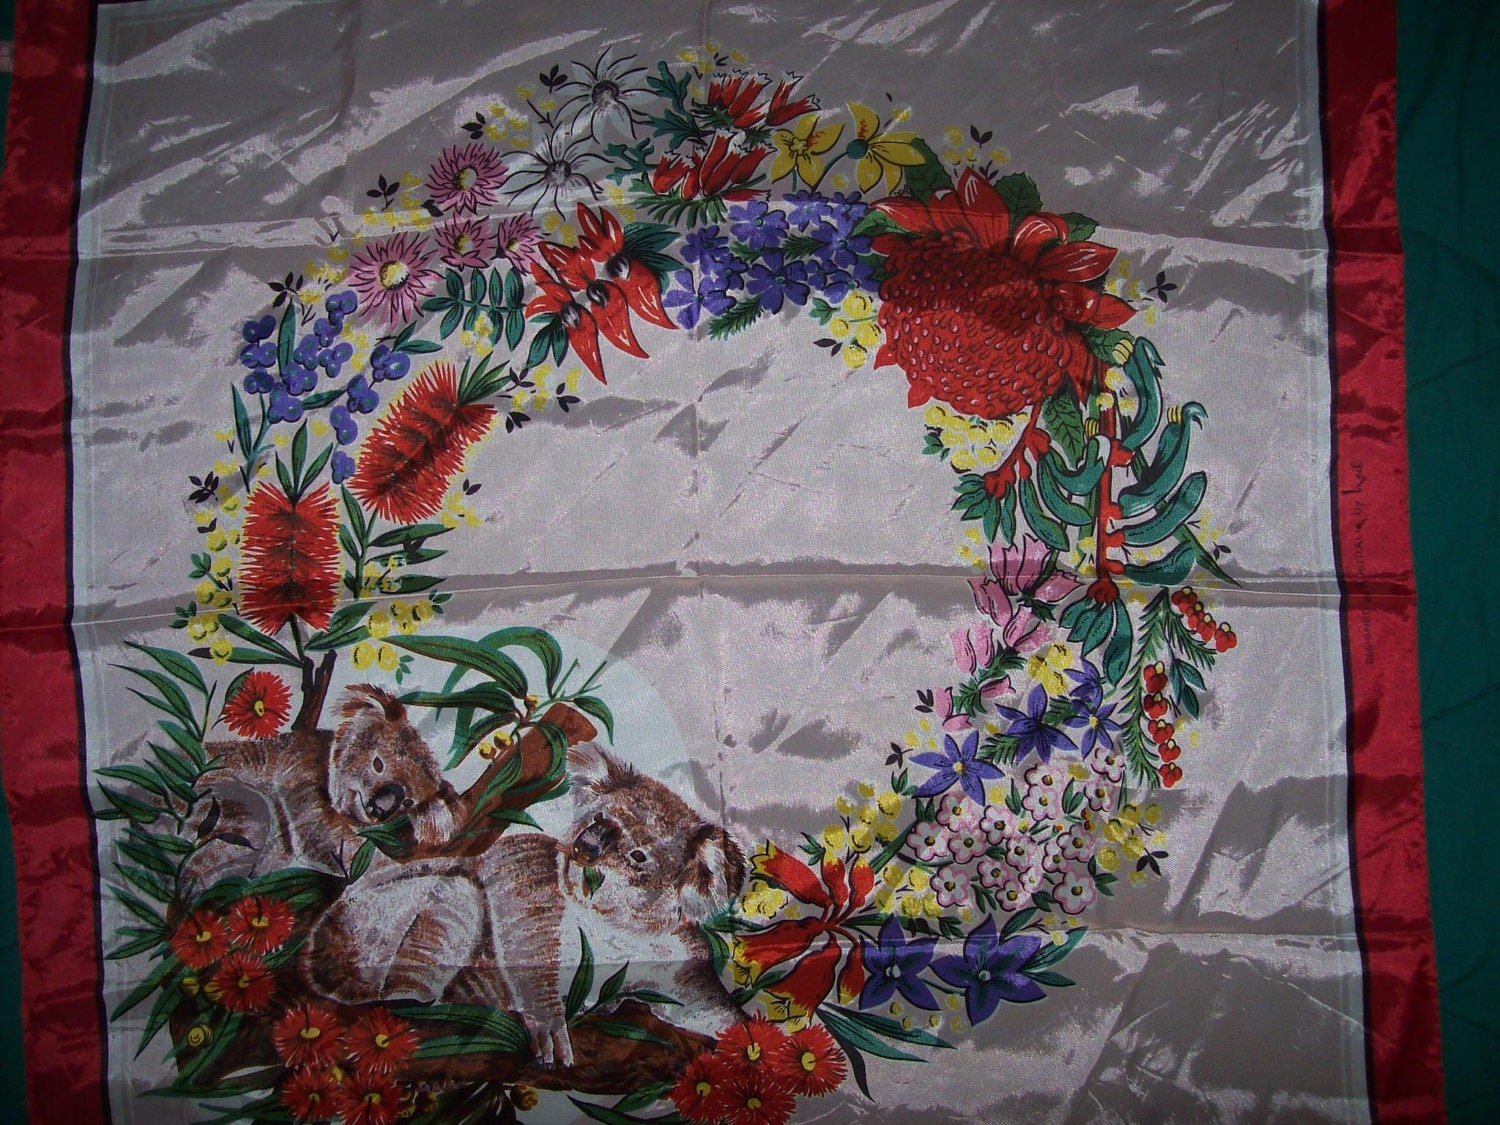 Vintage Silk Scarf Koala Bears Tropical Plants Flowers Wreath Red  Vintage Silk Scarves Australia